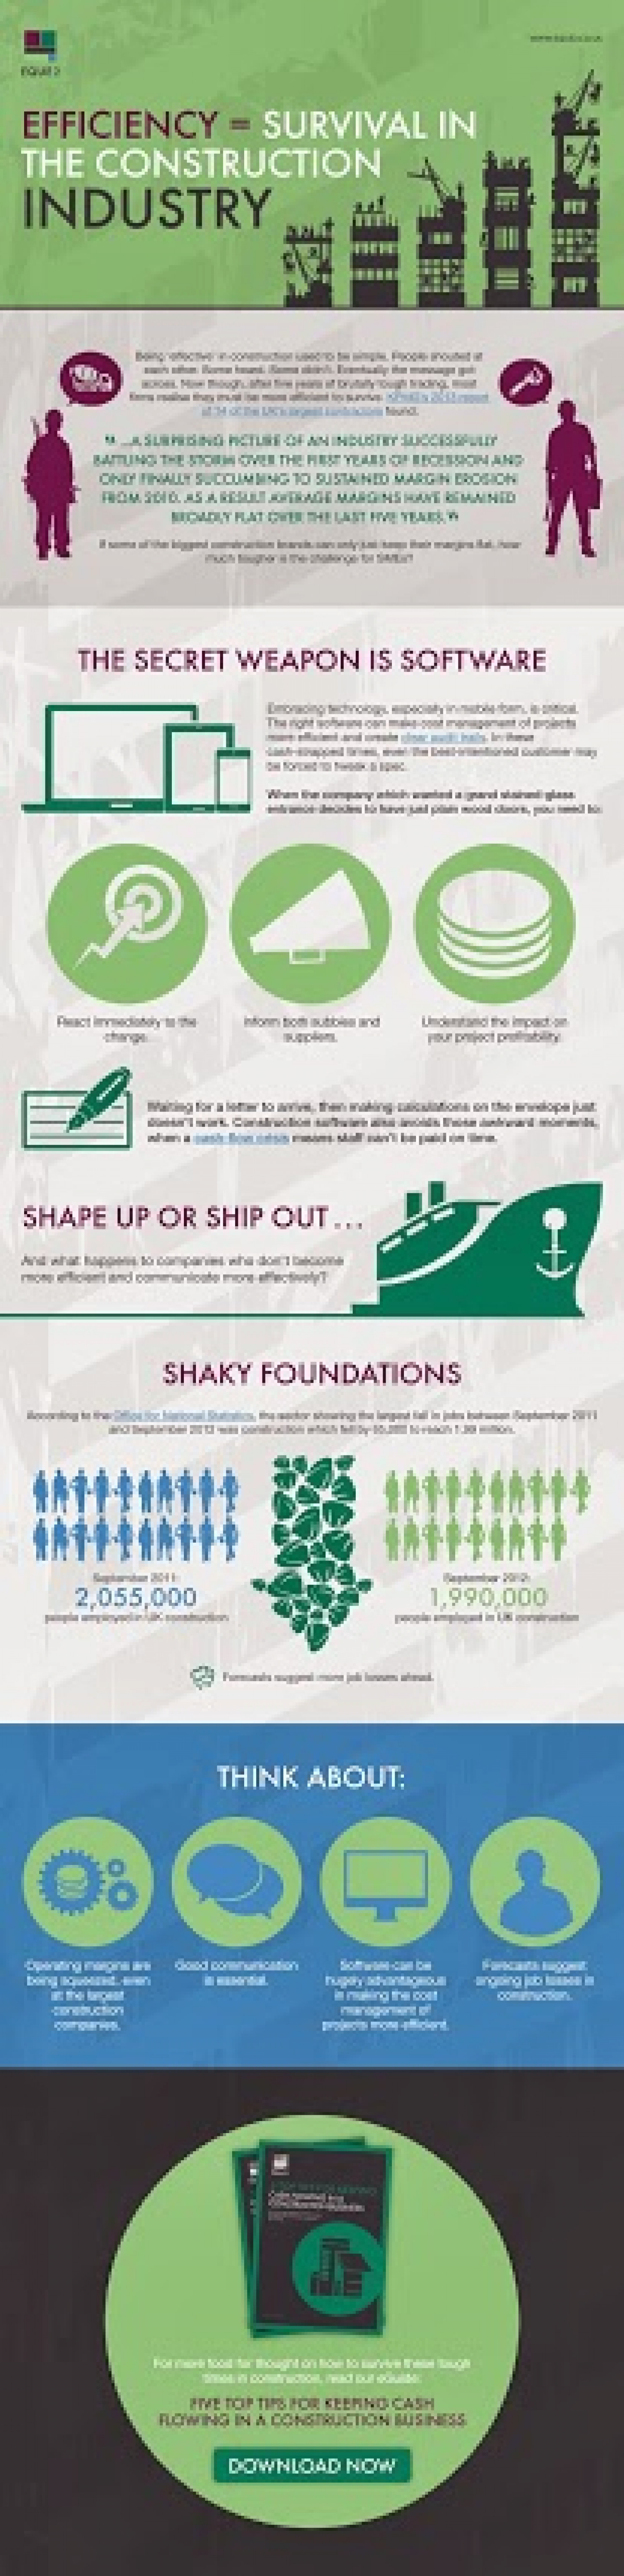 Efficiency = Survival in the Construction Industry Infographic